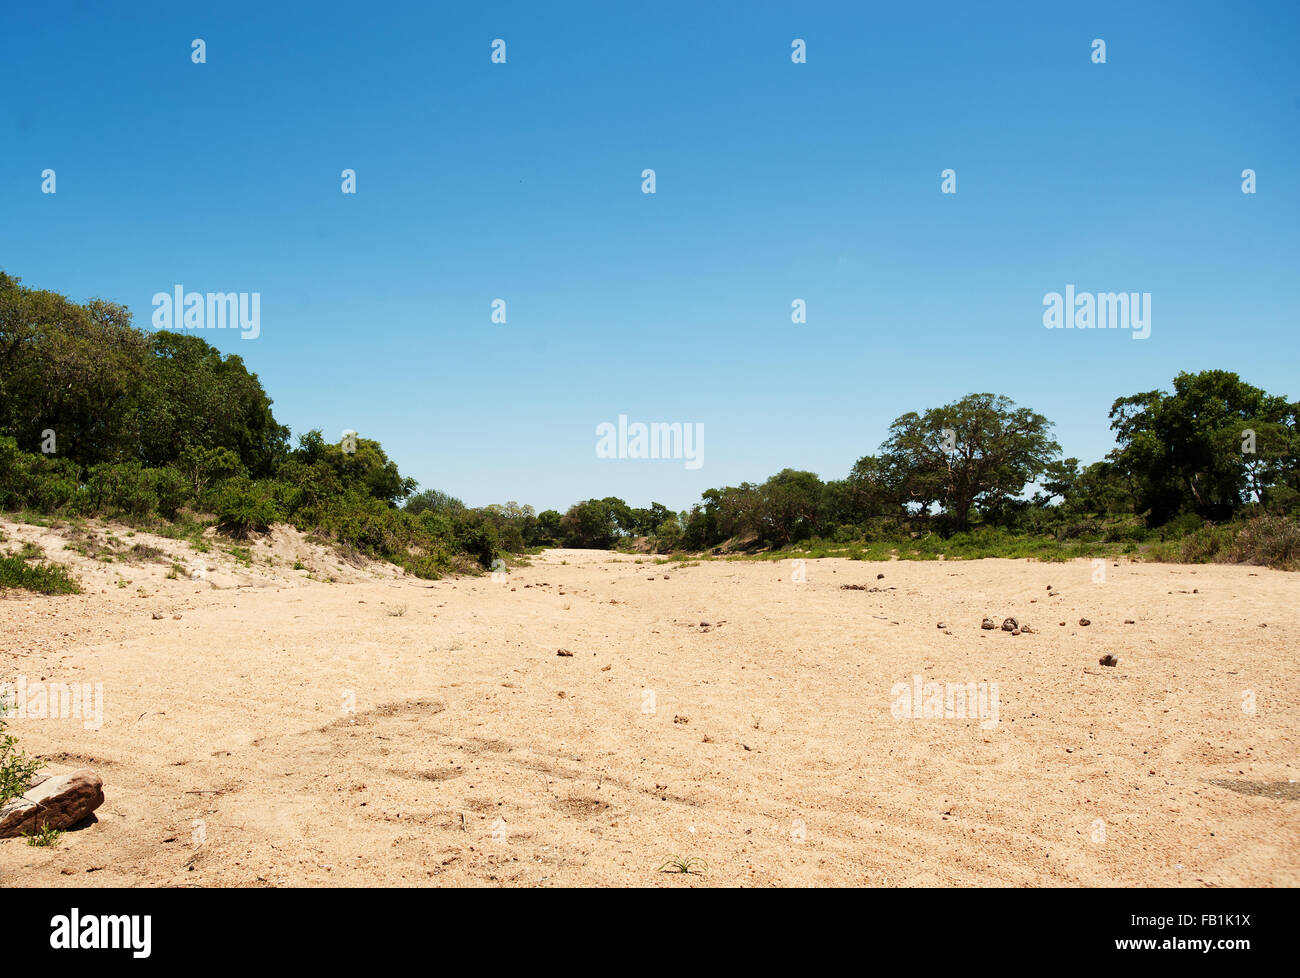 A dry riverbed in Kruger National Park.  The area has been declared a disaster area due to severe drought in South - Stock Image